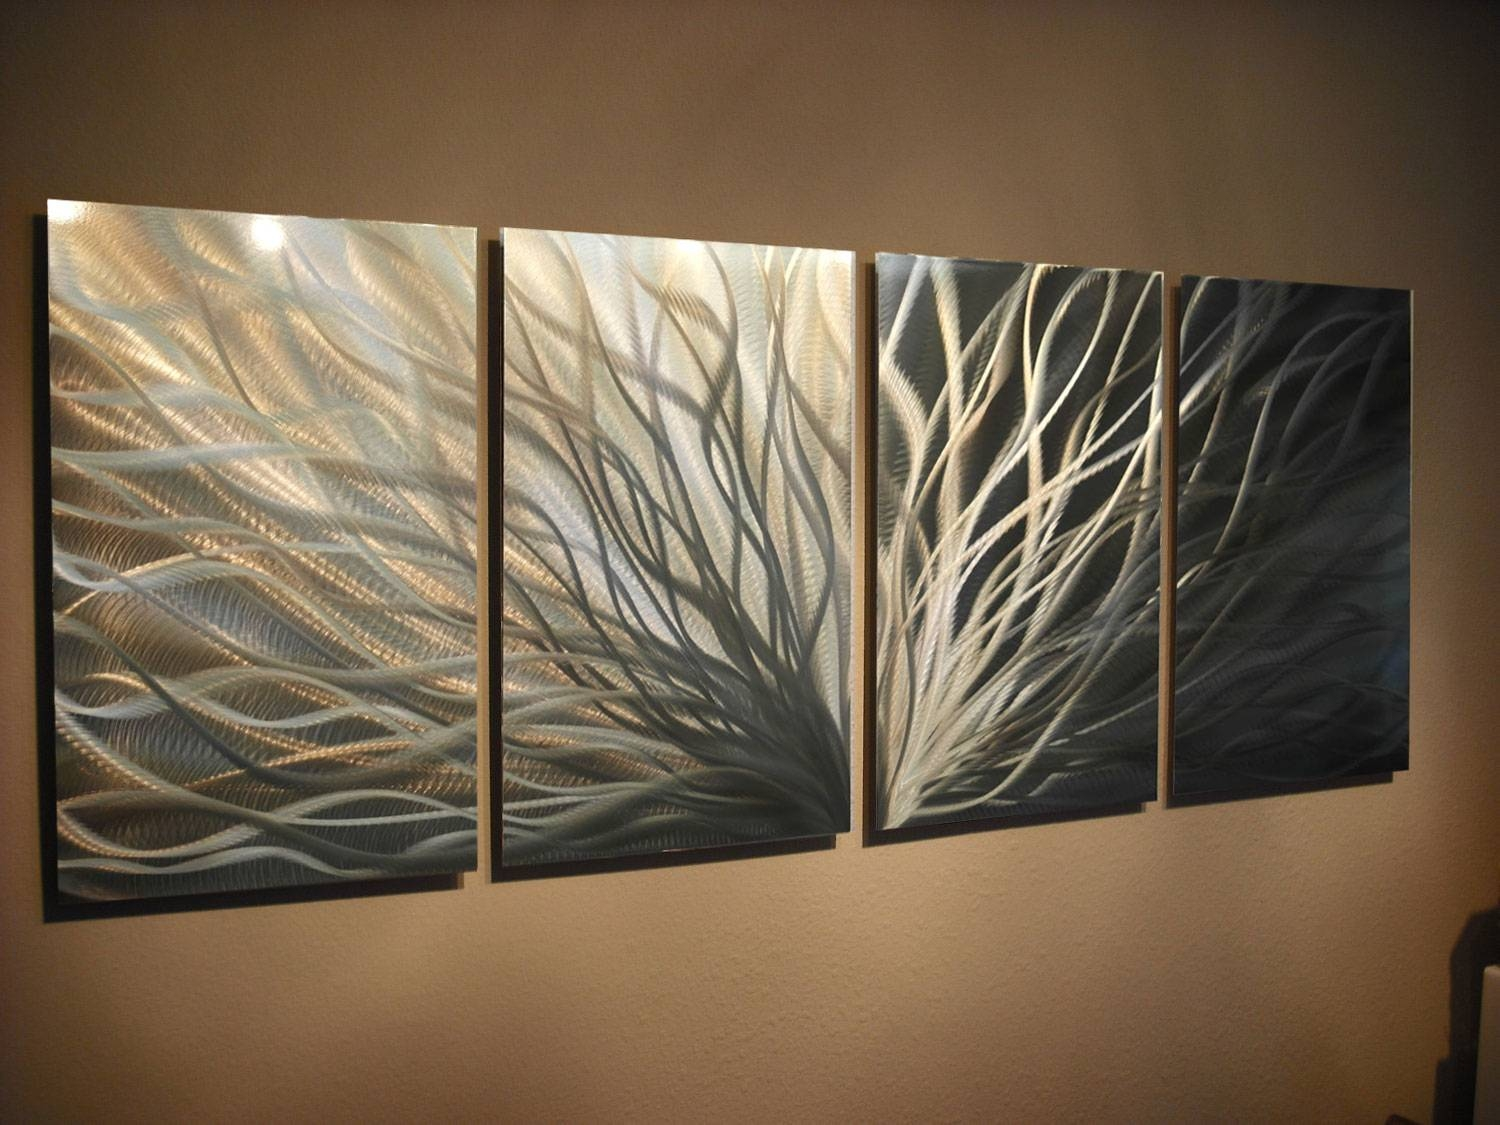 Abstract Metal Wall Art  Radiance Gold Silver  Contemporary Modern Inside Most Popular Silver And Gold Wall Art (View 1 of 15)